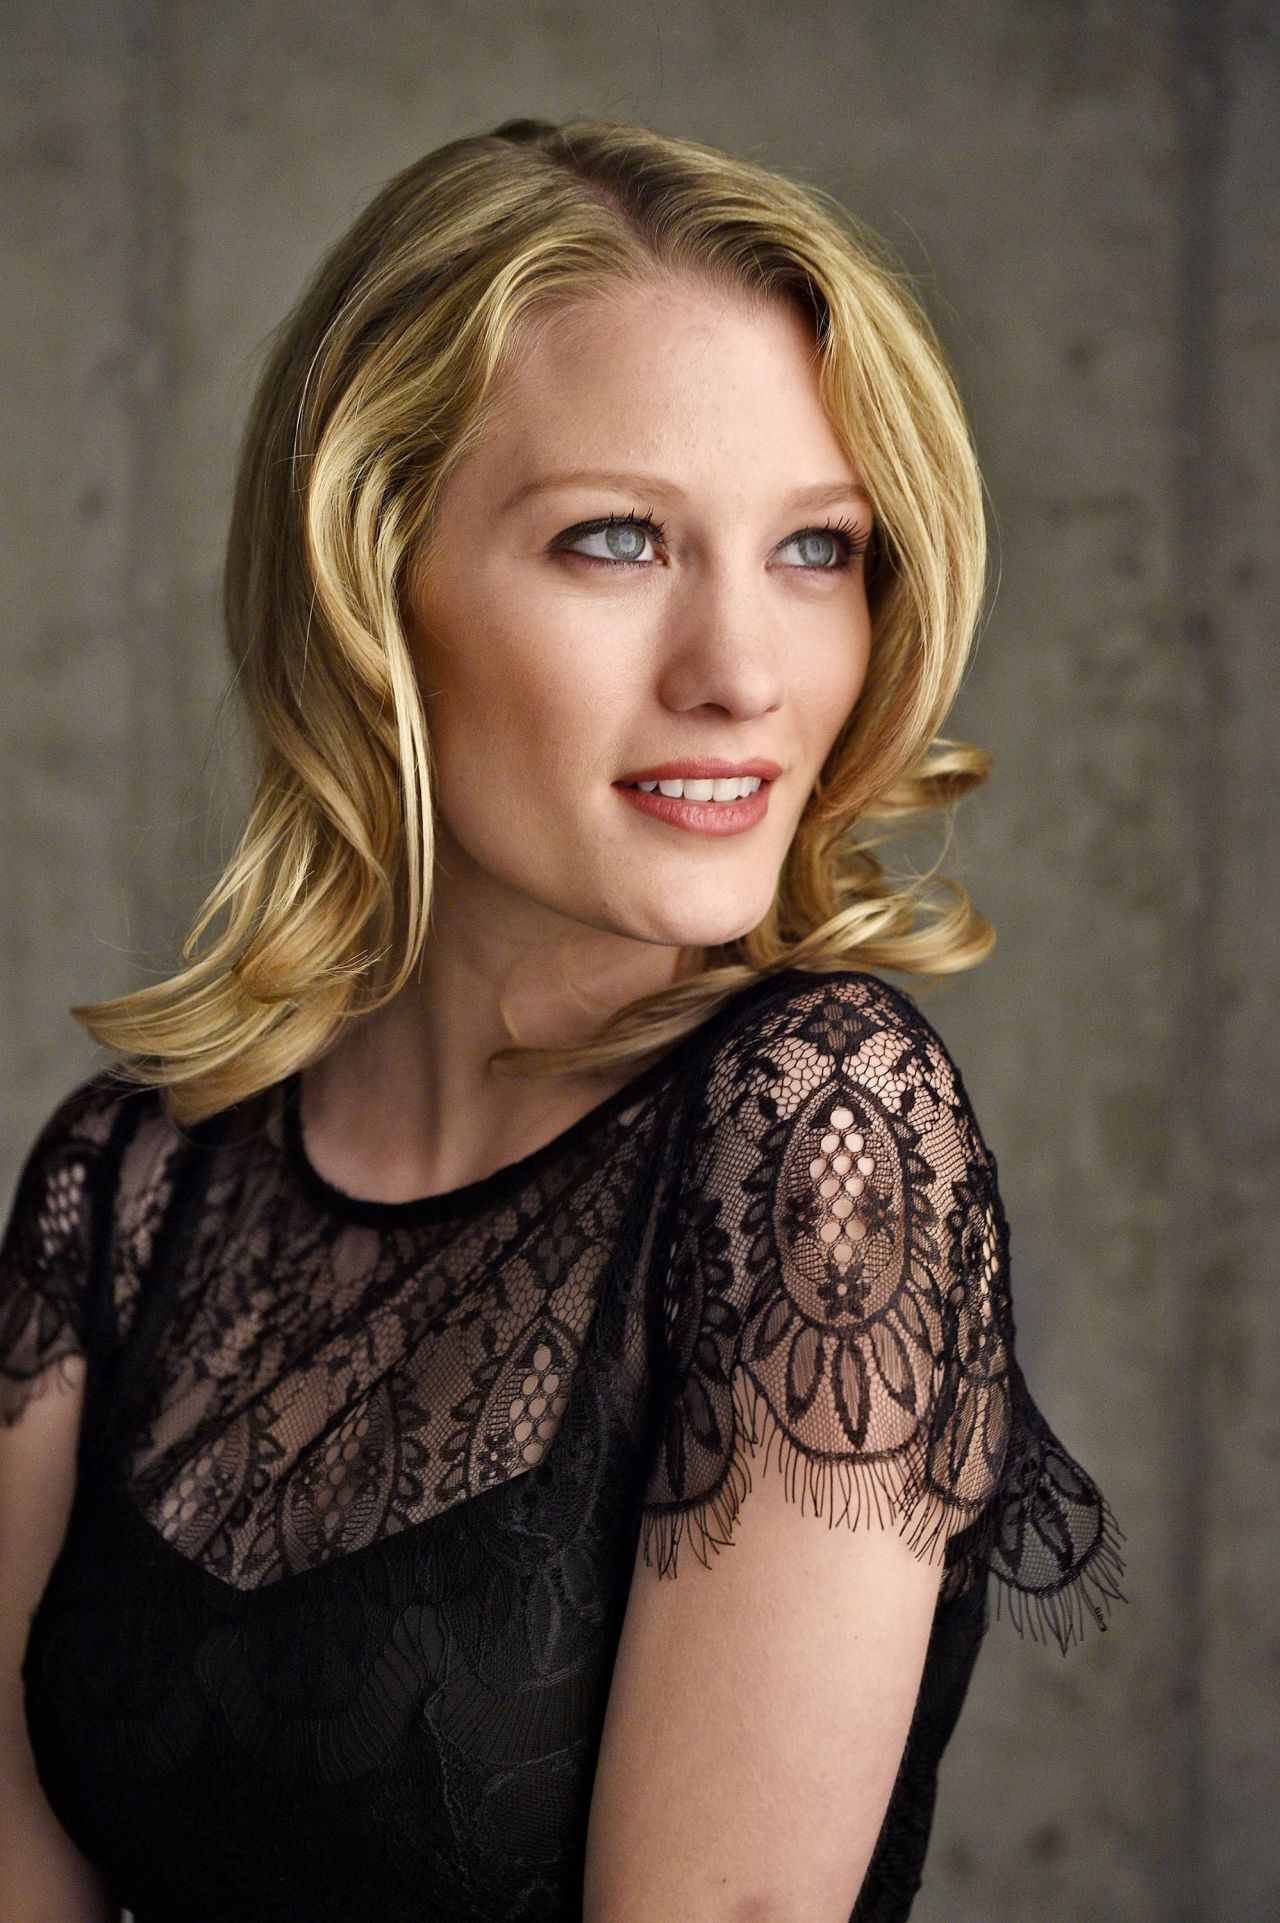 GOODBYE TO ALL THAT 2014 Tribeca Film Fest Portraits - Ashley Hinshaw